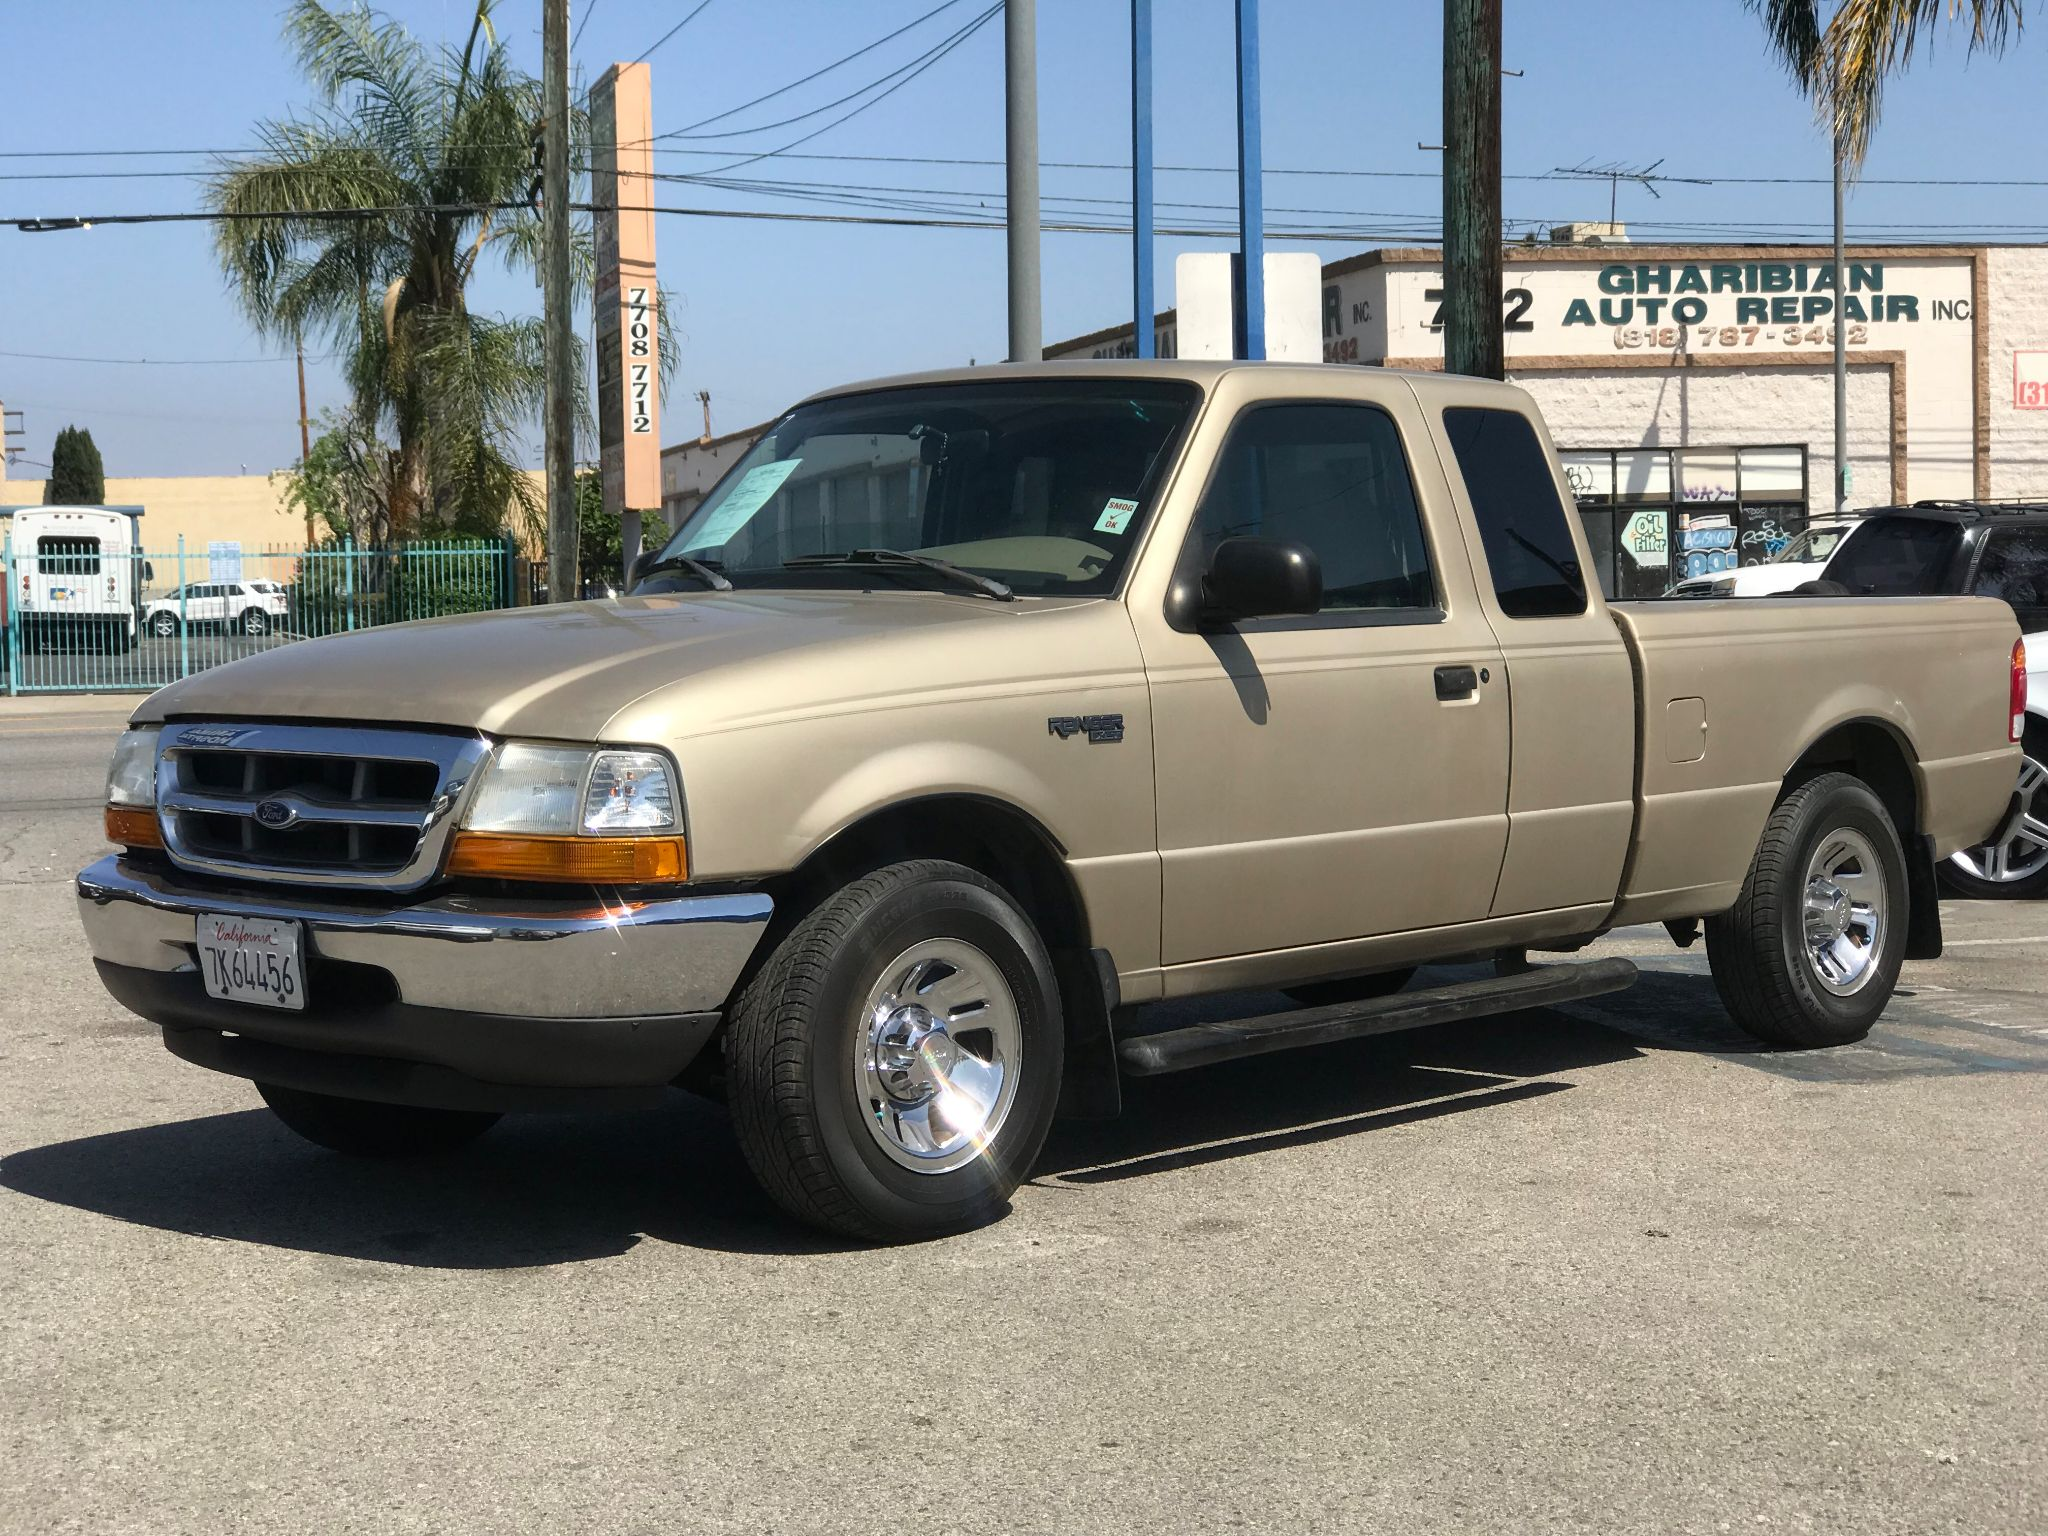 used 1999 ford ranger xlt at city cars warehouse inc used 1999 ford ranger xlt at city cars